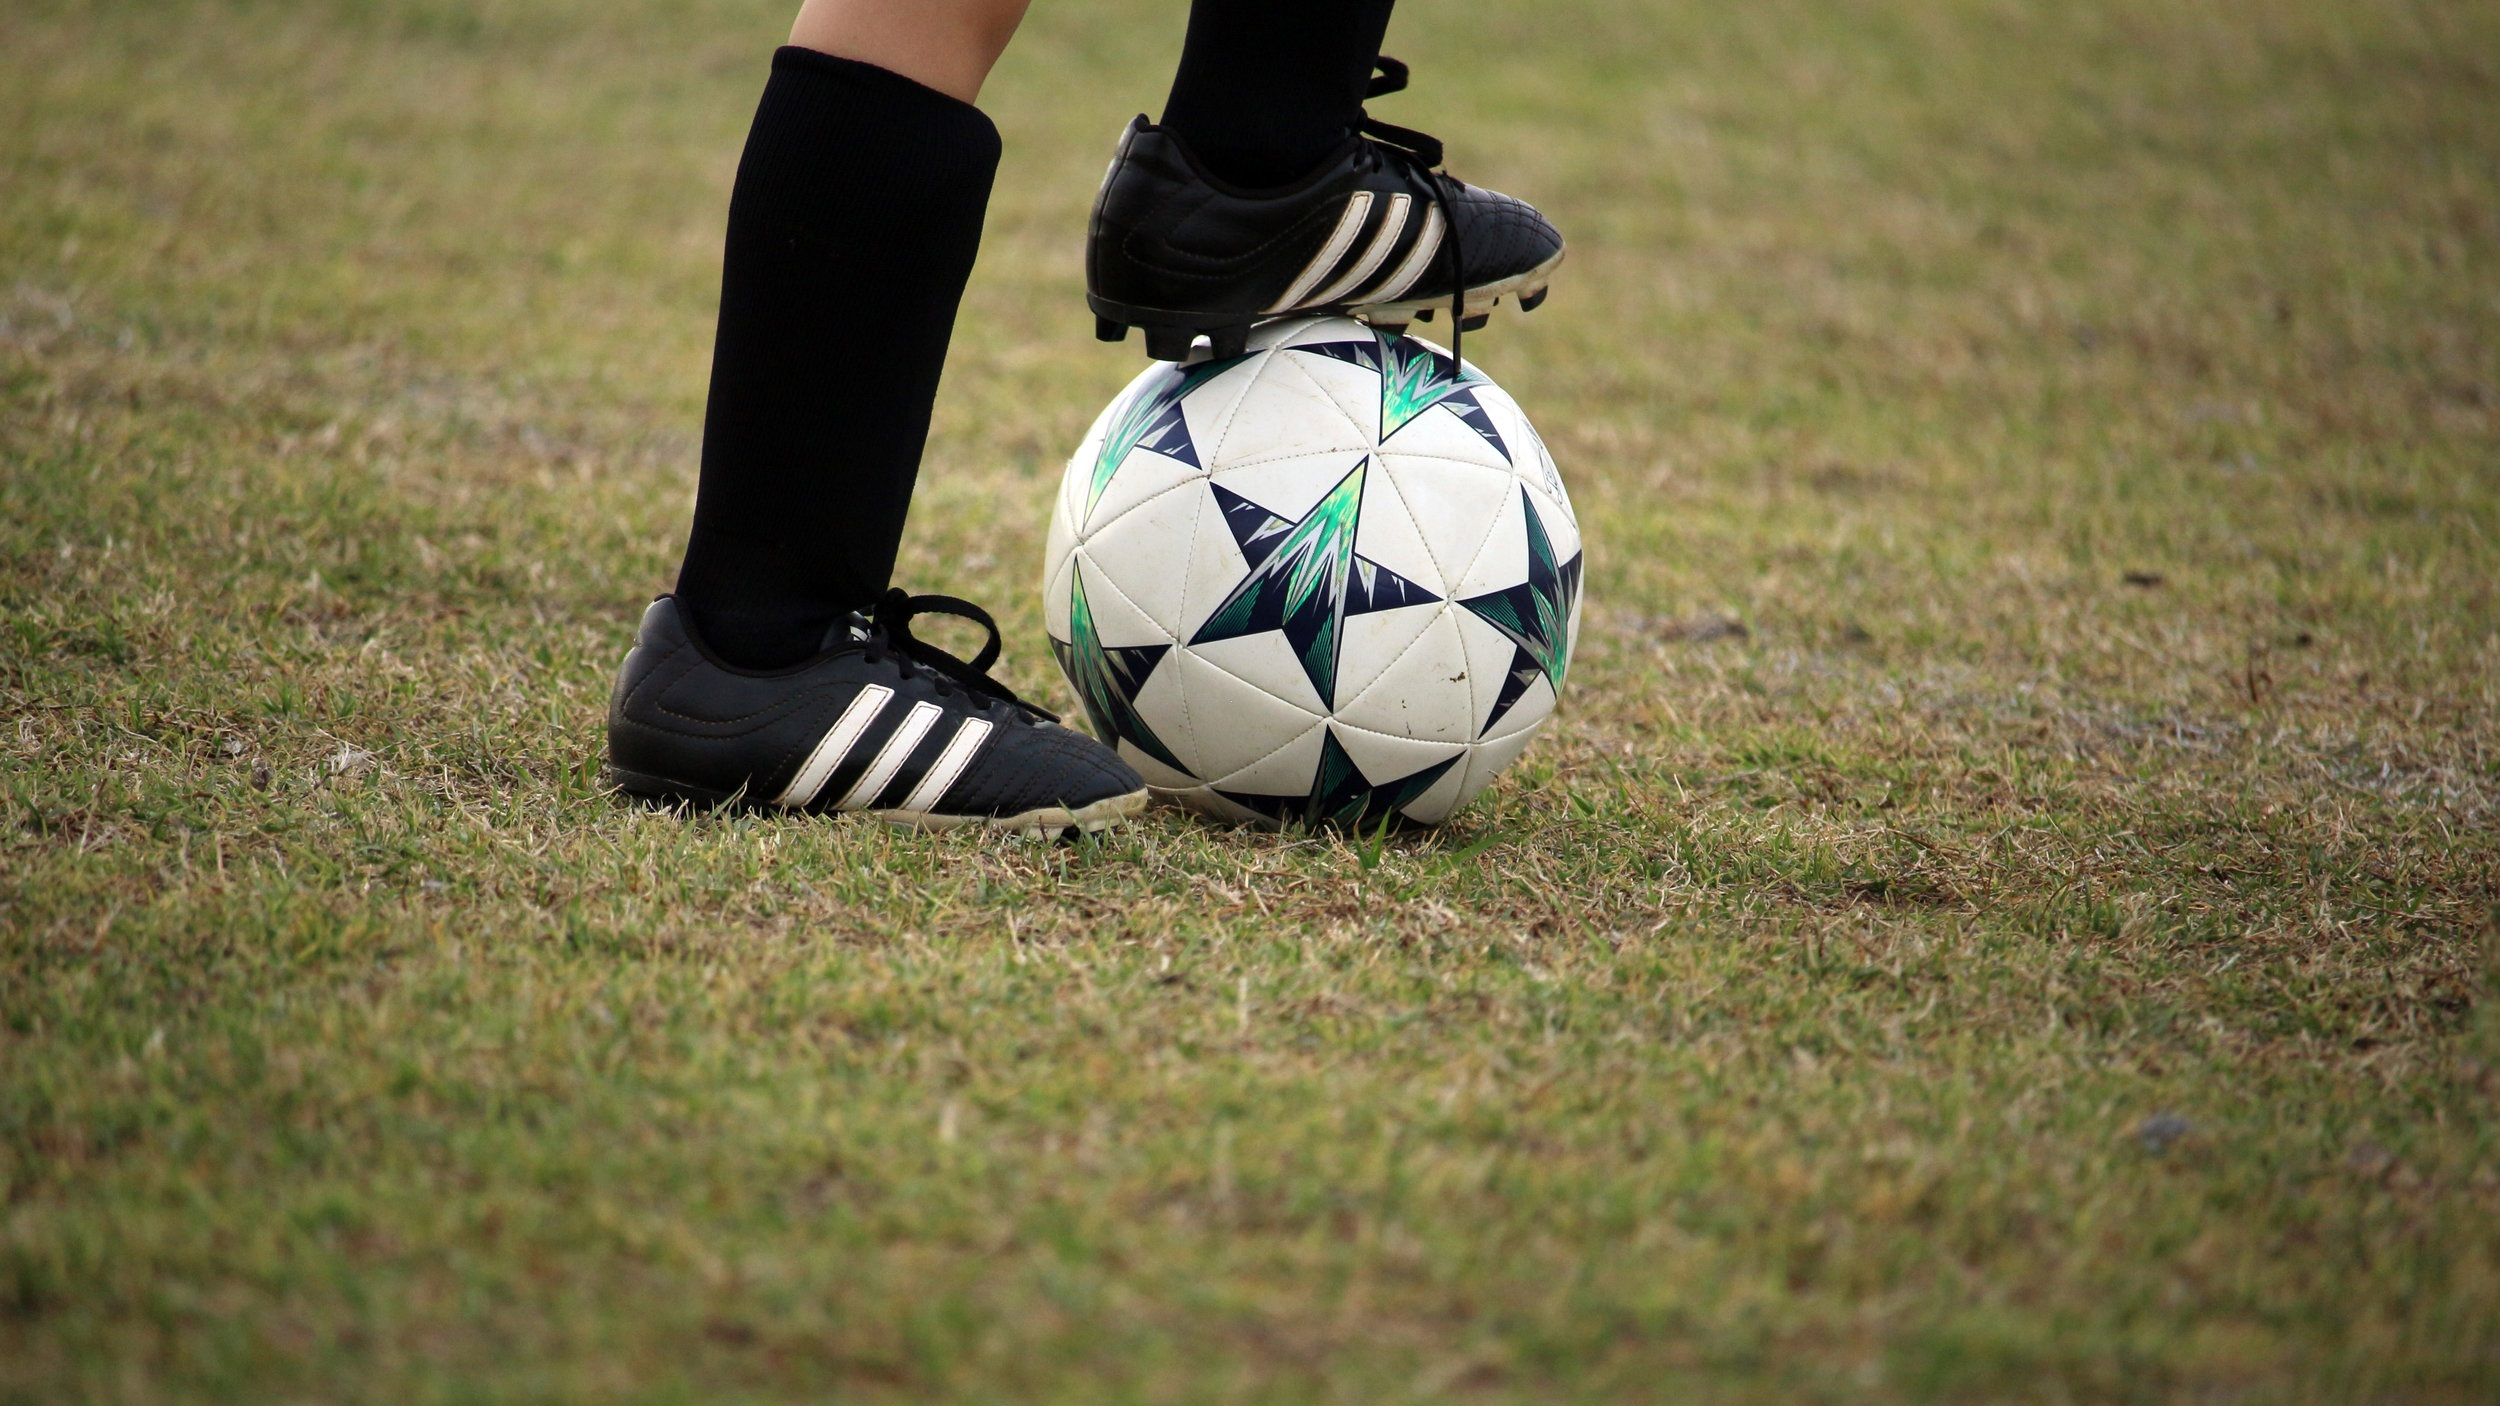 soccer camp - WHO: All Children entering K4 - 5th gradeWHEN: July 15-19, 2019 // 9:00 AM - 12:00 PMCOST: $55 Early Registration (May 1 - June 9, 2019)$65 Registration (June 10, 2019)REGISTRATION ENDS: Sunday, June 30, 2019